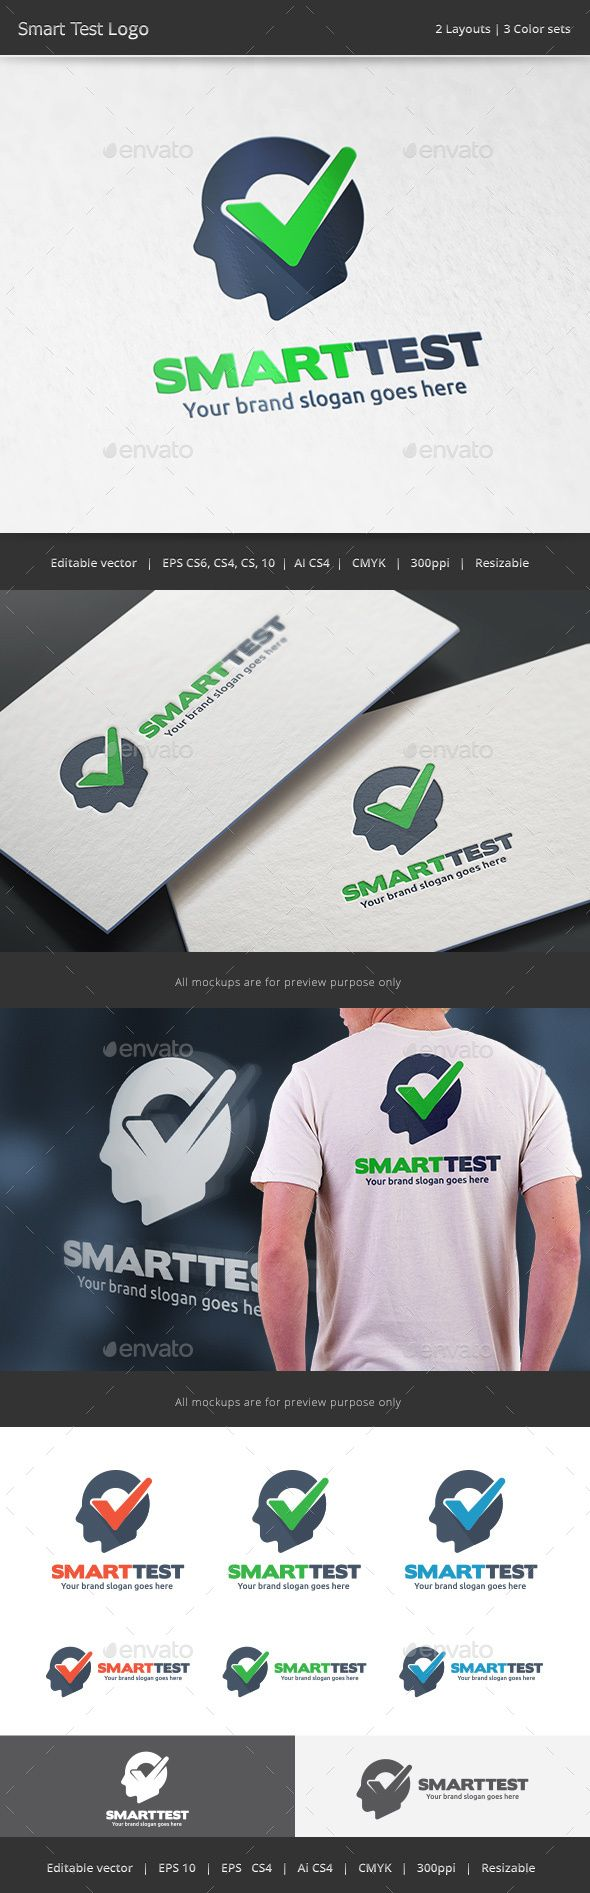 Smart Check  Logo Design Template Vector #logotype Download it here: http://graphicriver.net/item/smart-check-logo/15395939?s_rank=63?ref=nexion